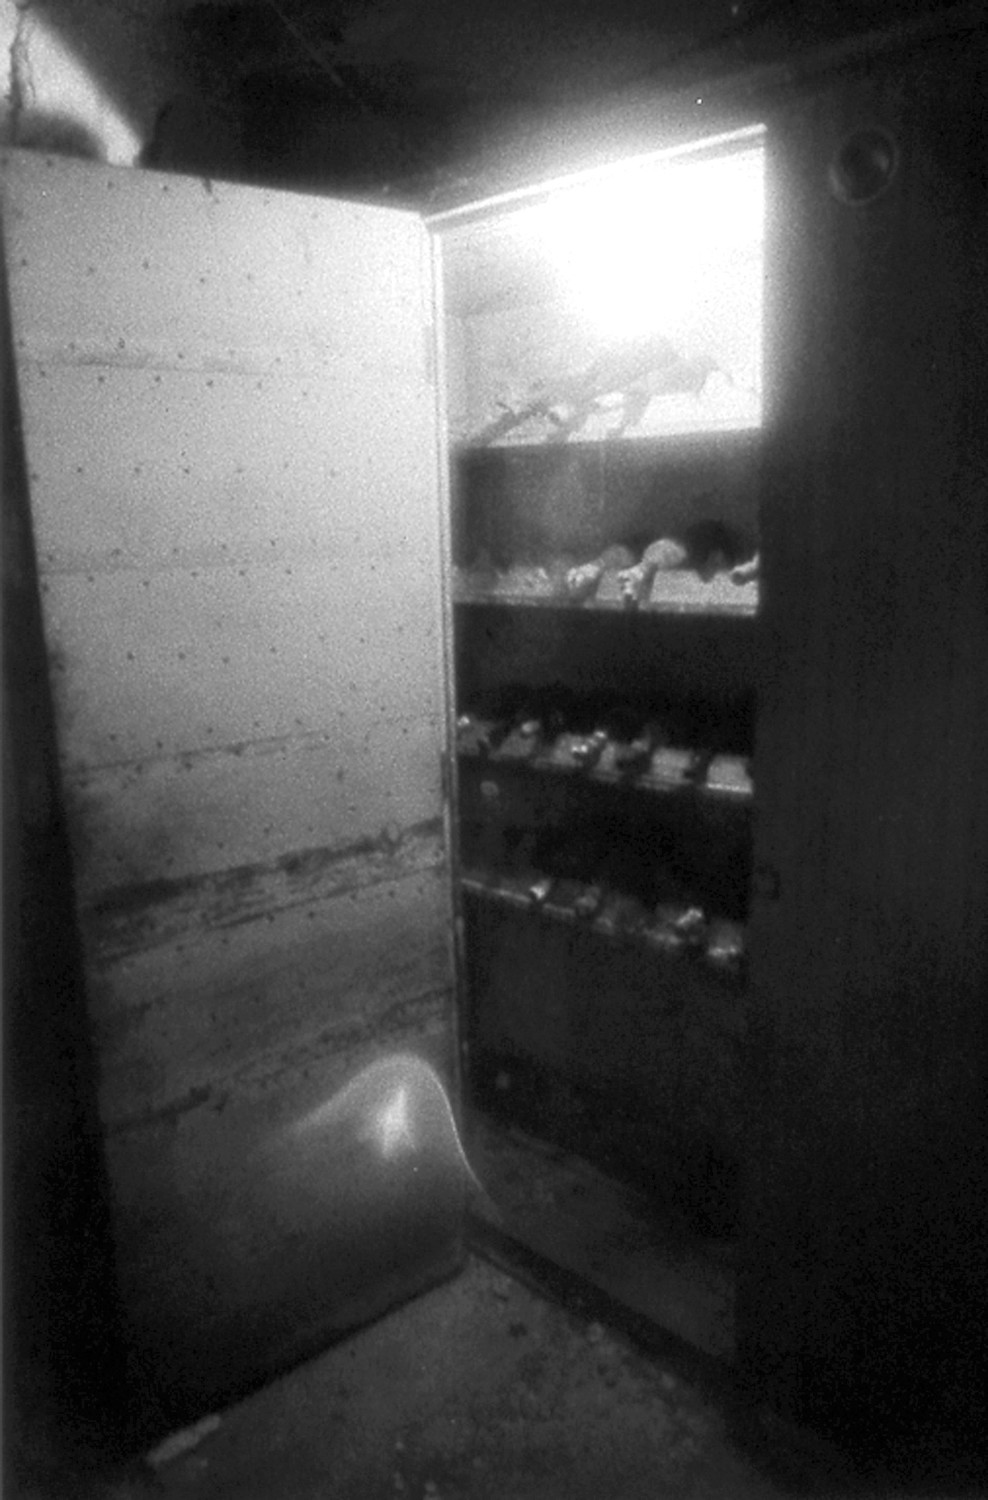 ORBS: Pictured are filmy white orbs captured by Cyril Place (a friend of Bell) taken with an infrared camera in the wine cellar of the Sprague Mansion.